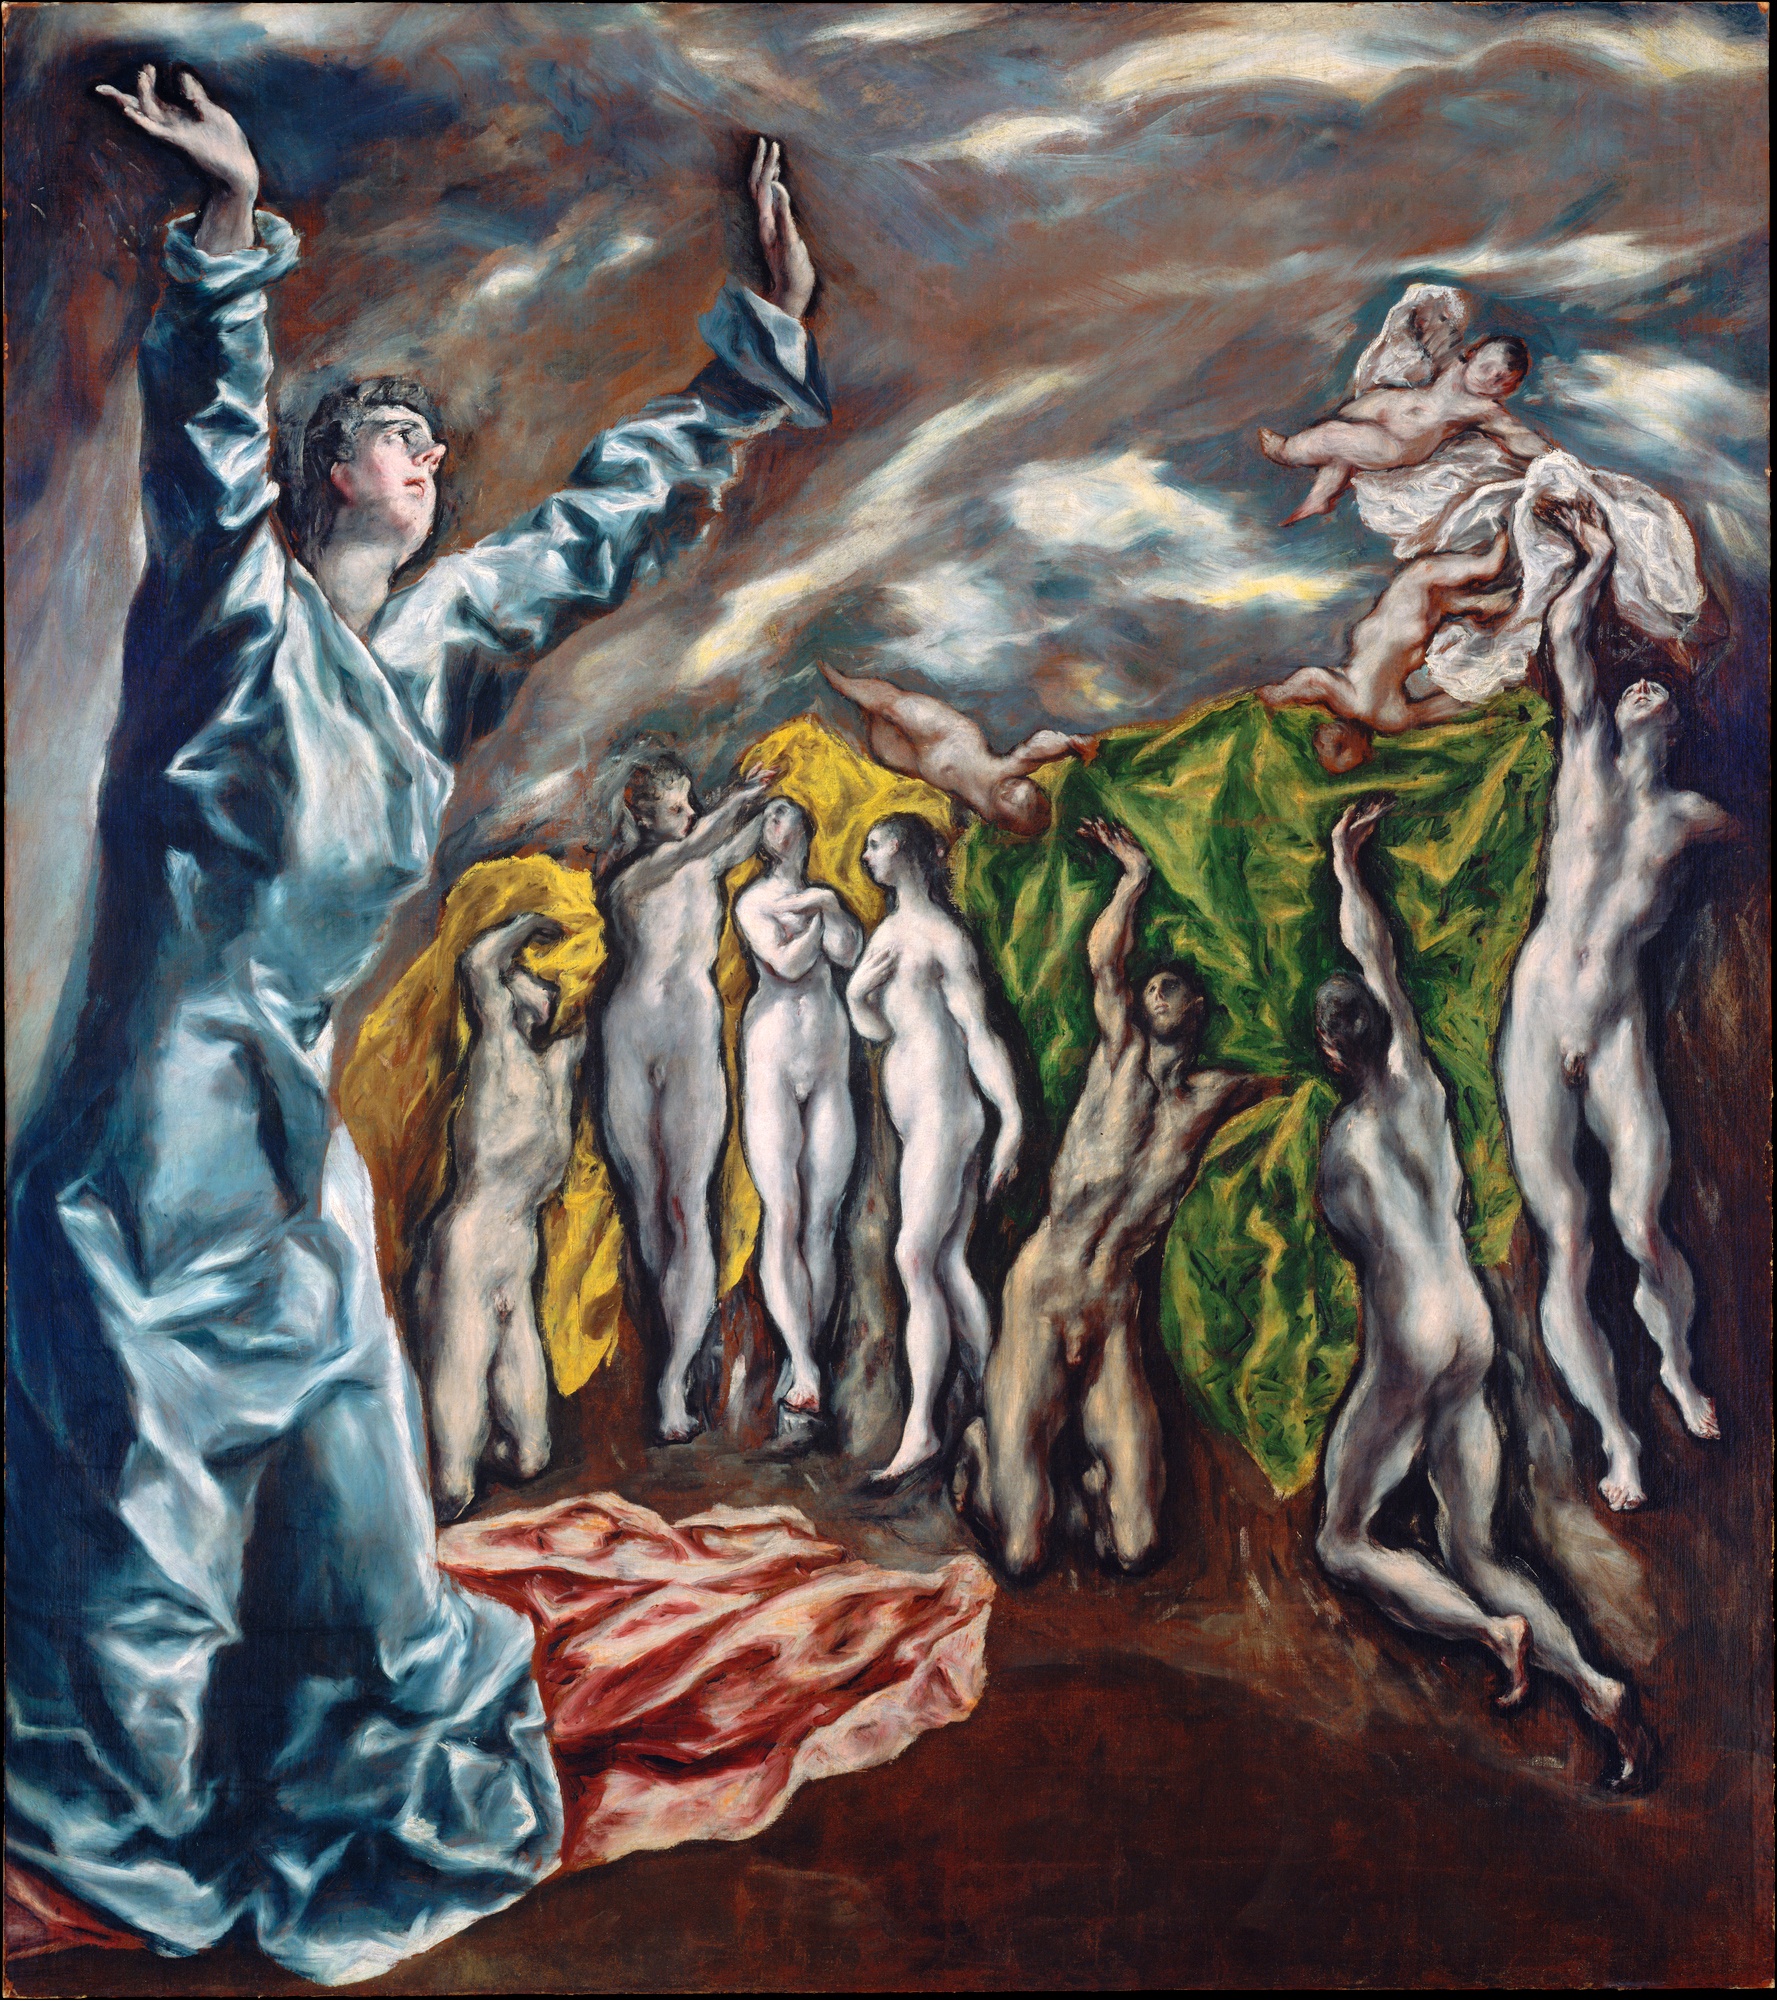 The Vision of Saint John (aka The Opening of the Fifth Seal) by El Greco